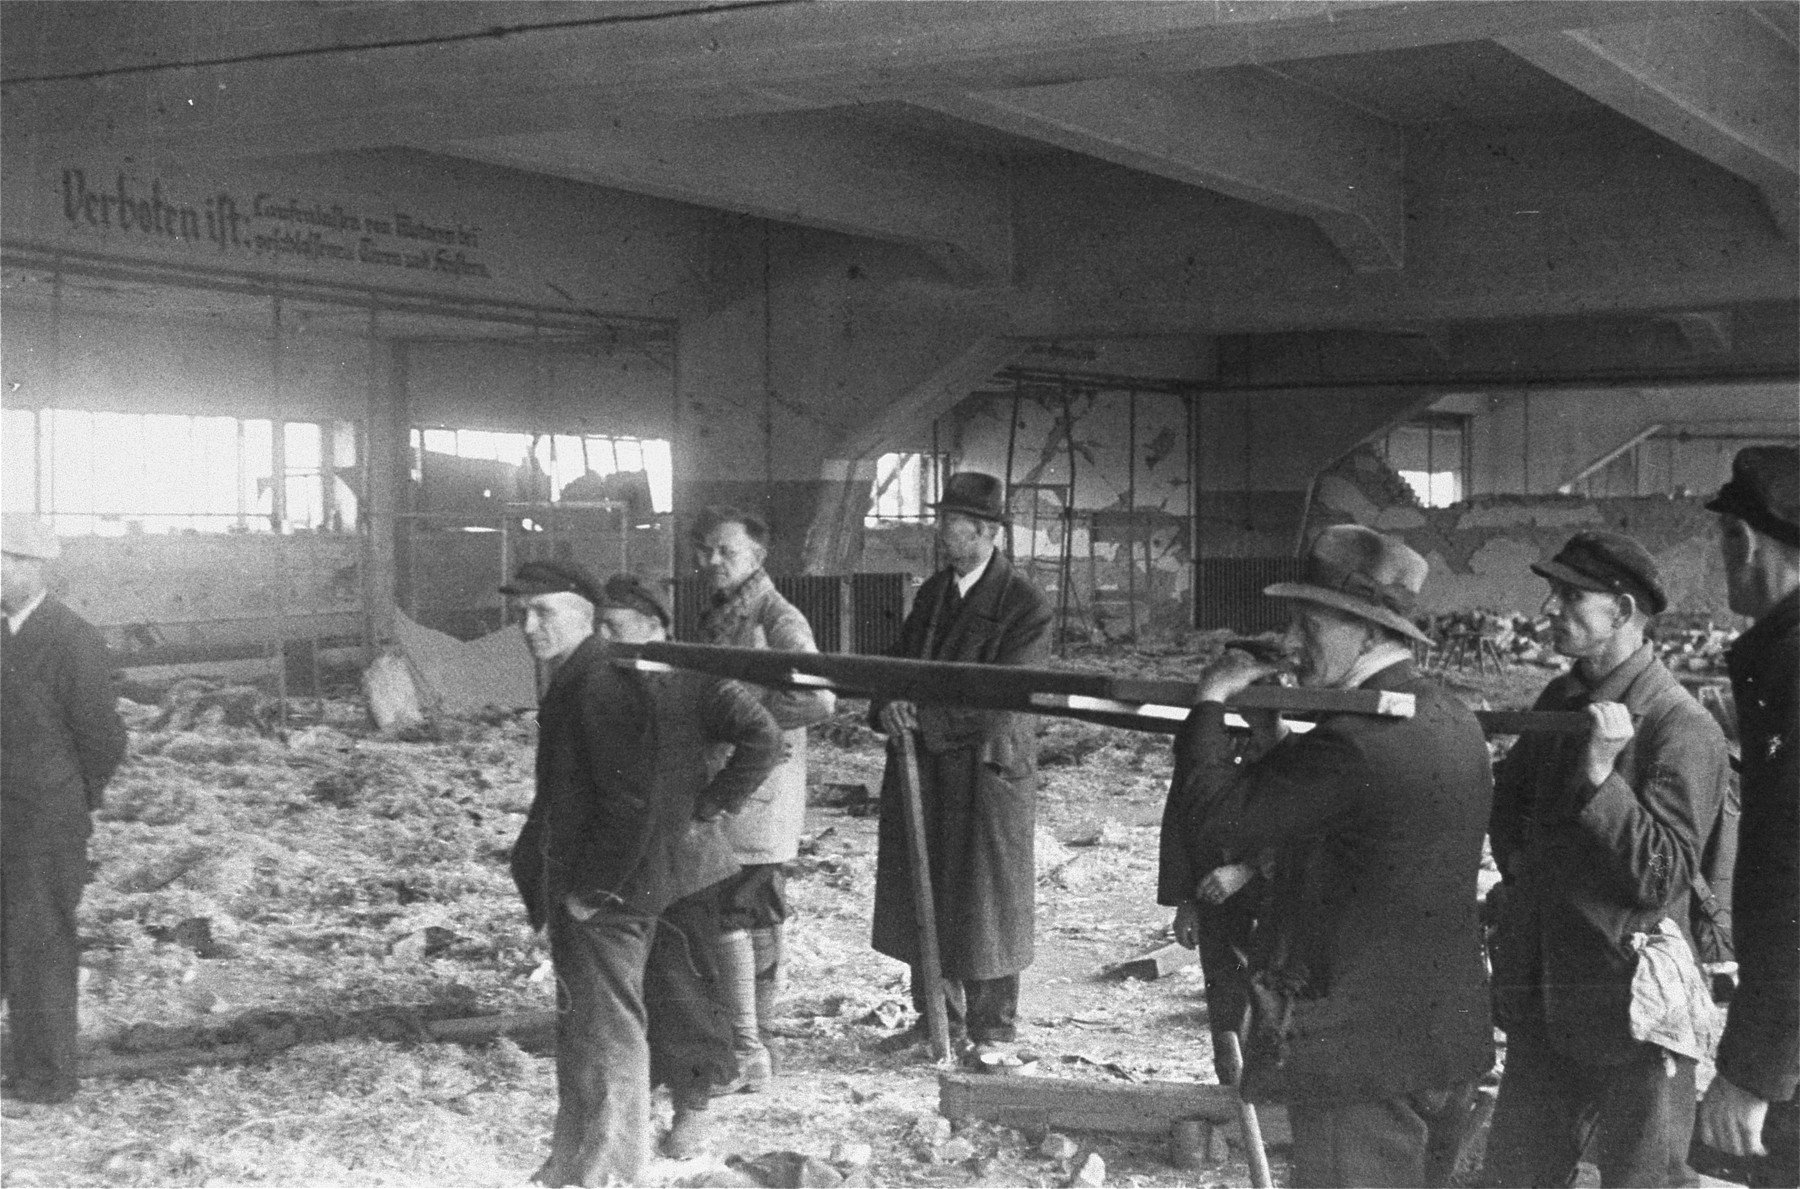 German civilians from the town of Nordhausen remove corpses from the central barracks (Boelke Kaserne) in the Nordhausen concentration camp.